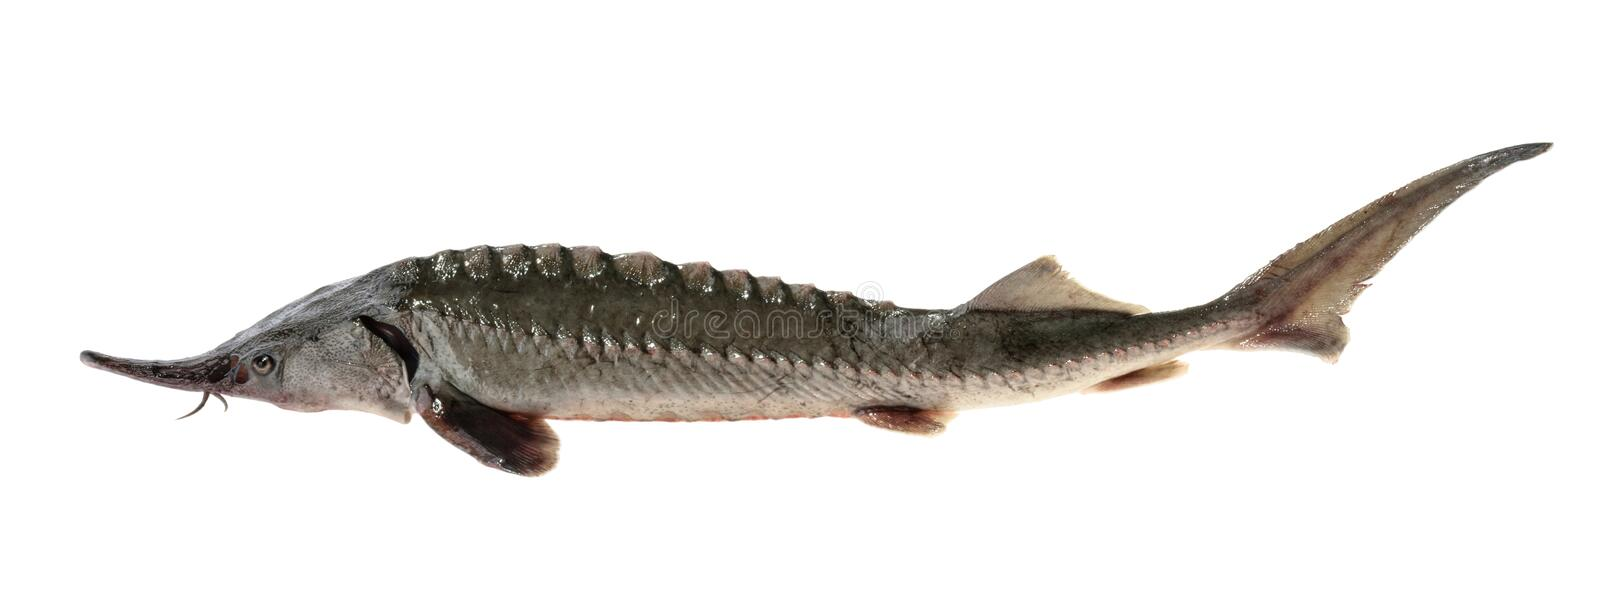 Fresh sturgeon fish isolated on white without shadow.  royalty free stock images